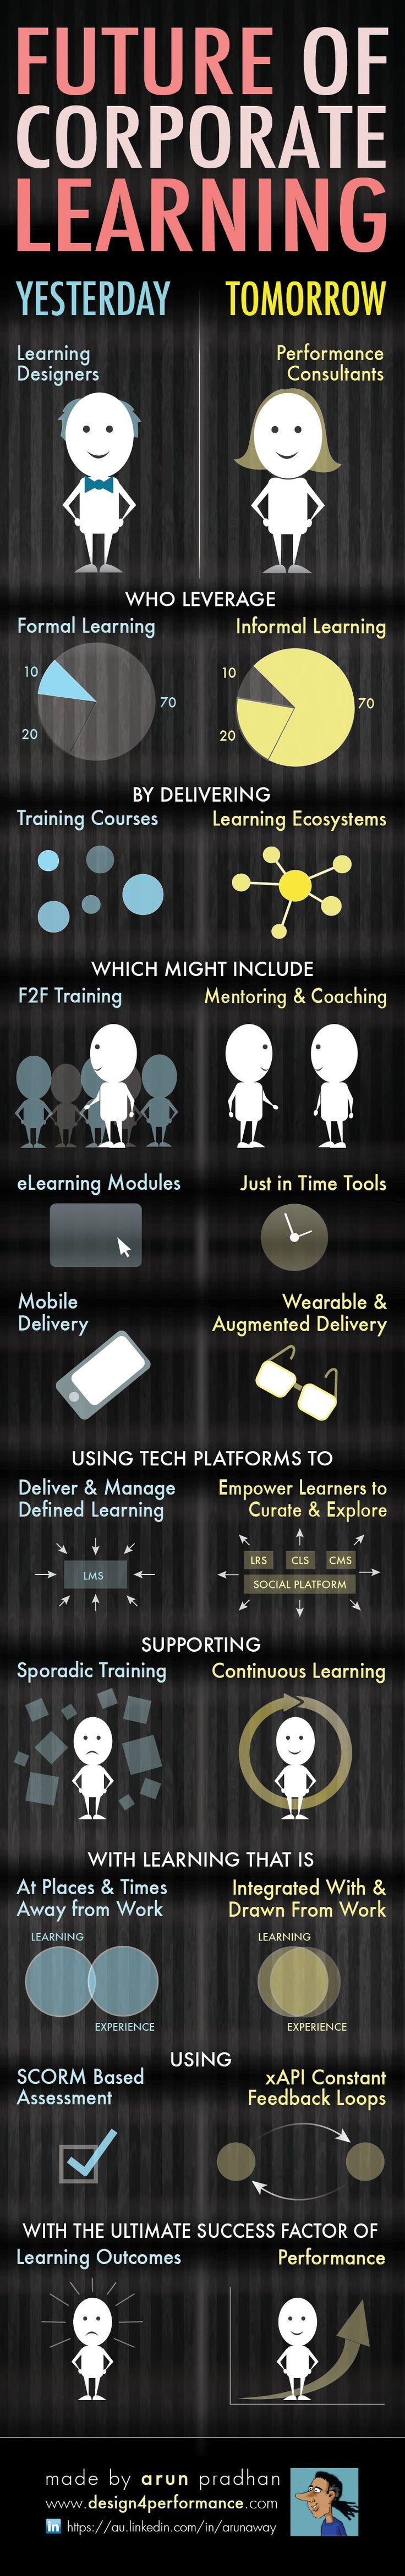 What's in store for learning? An infographic exploring the not too distant future of learning ecosystems, xAPI and augmented reality.